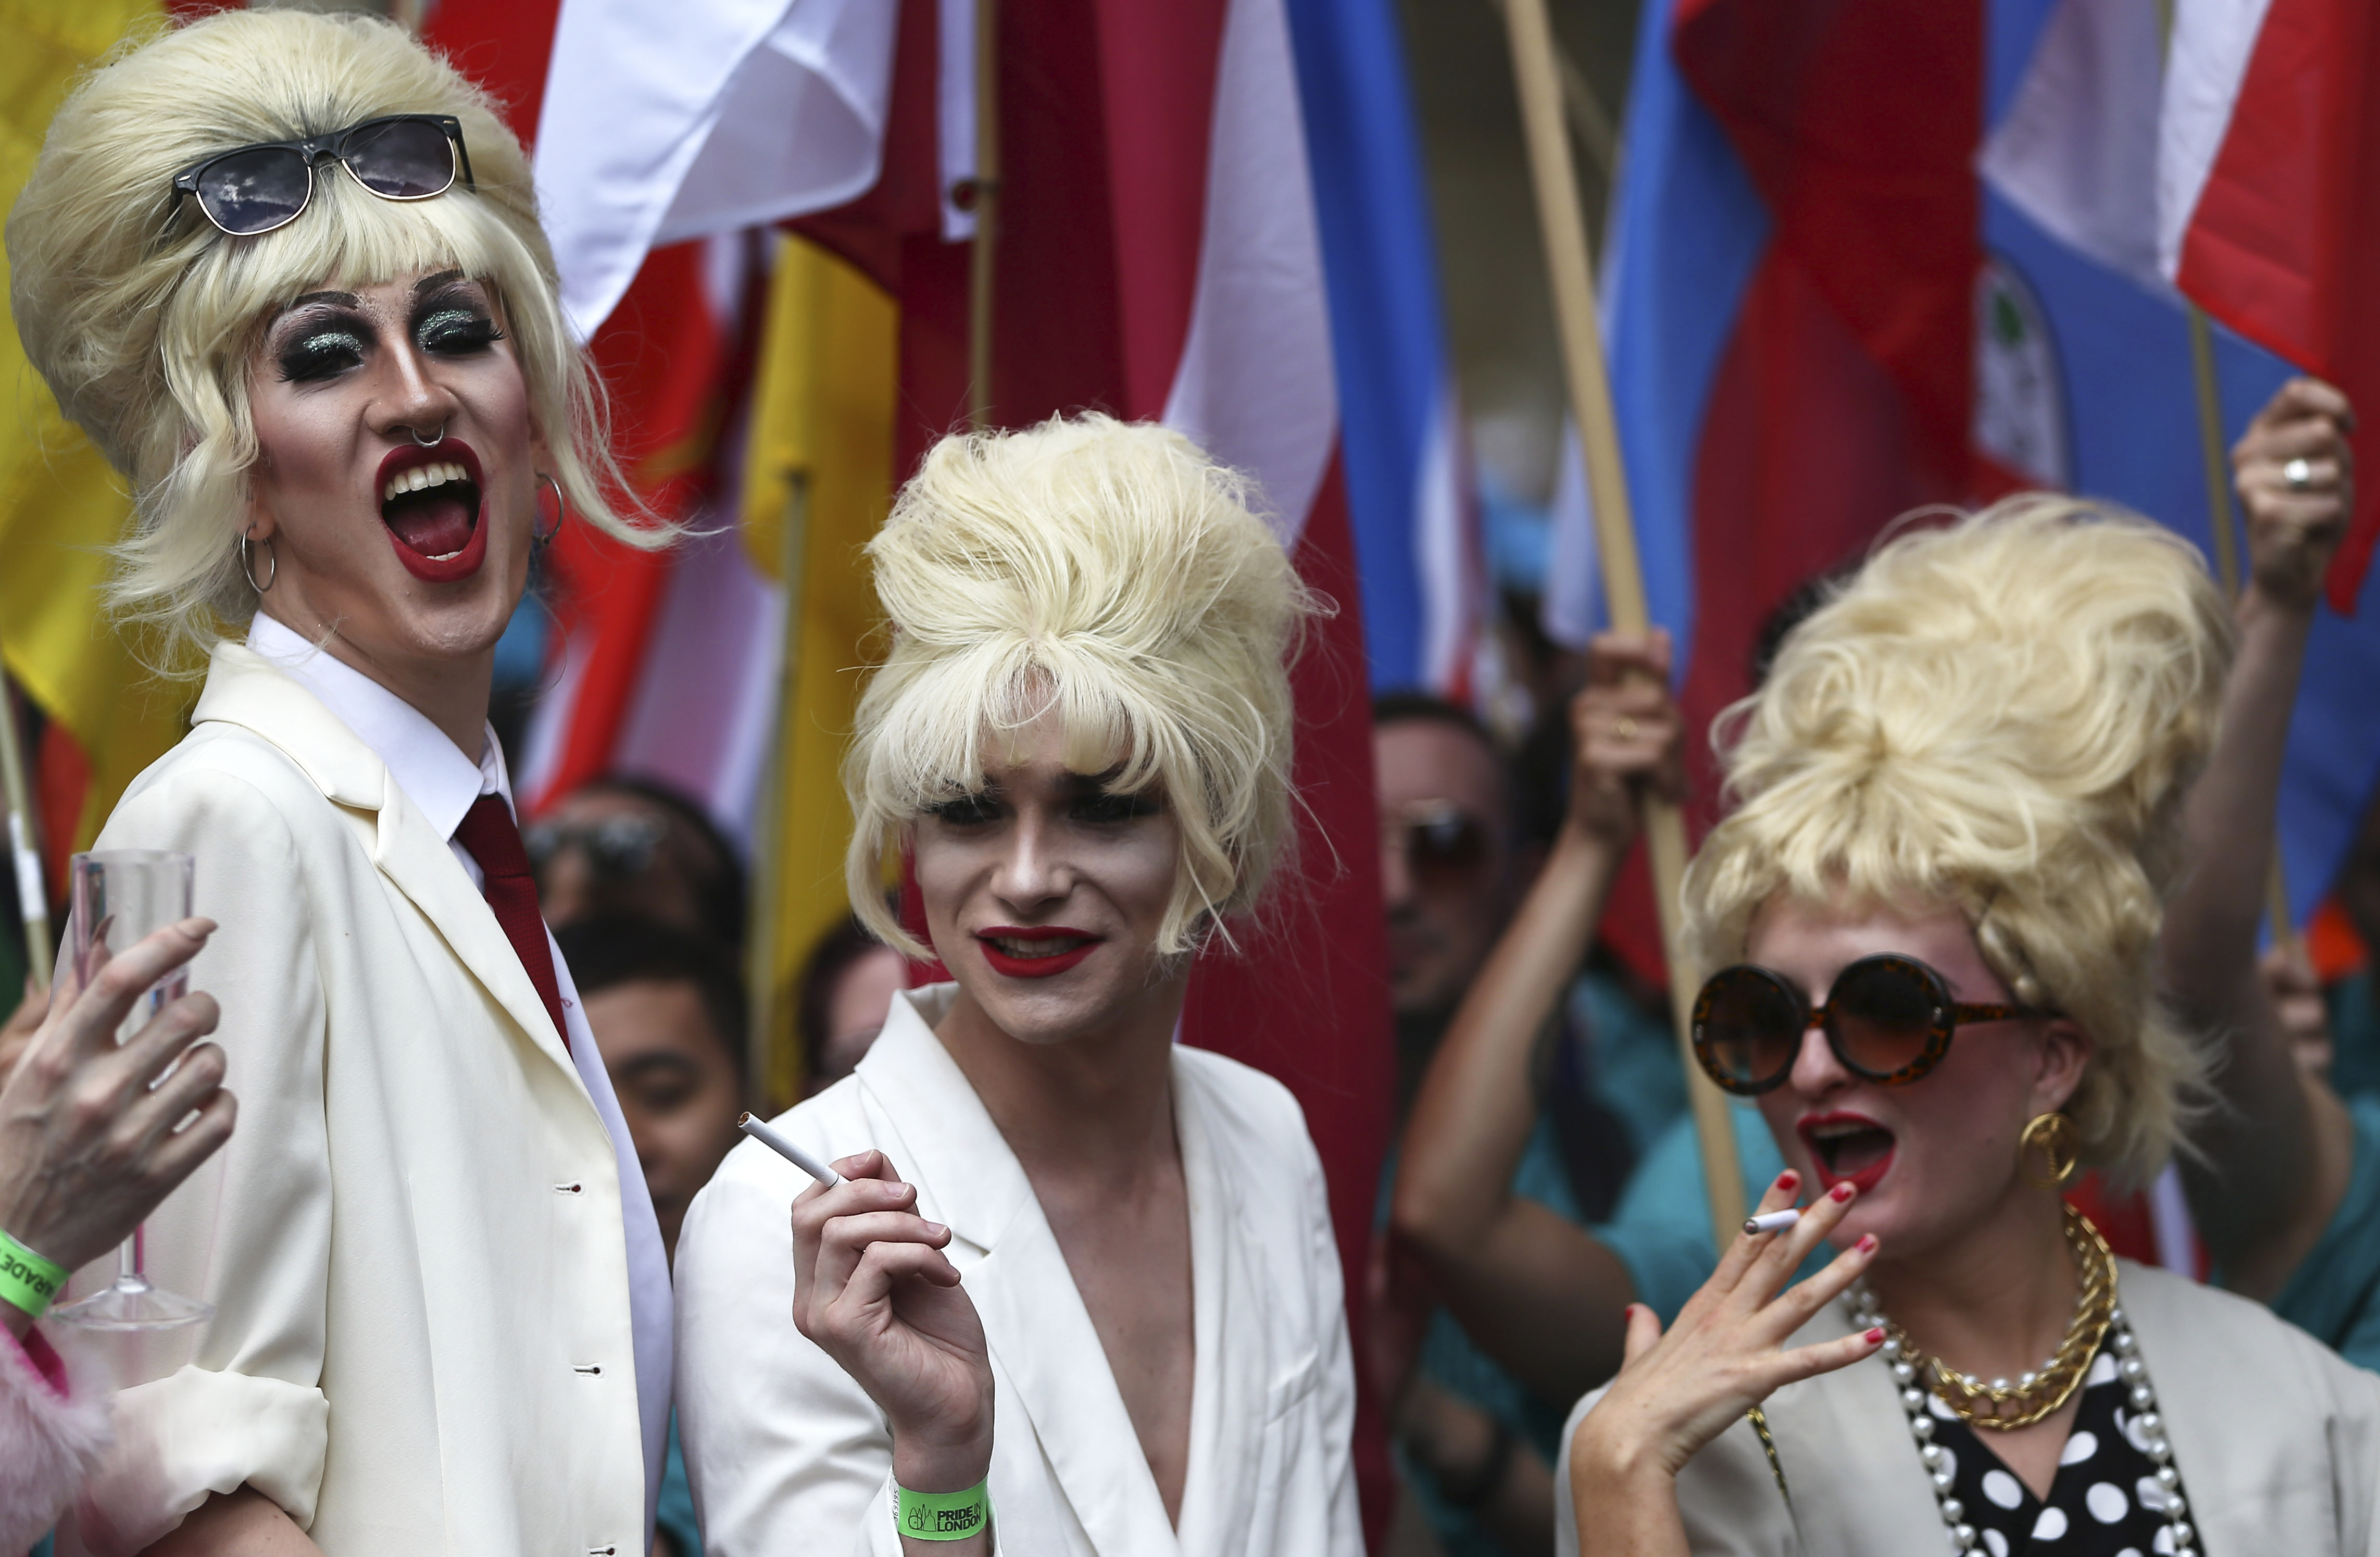 """Being transgender is a mental illness"": What does the DSM ..."